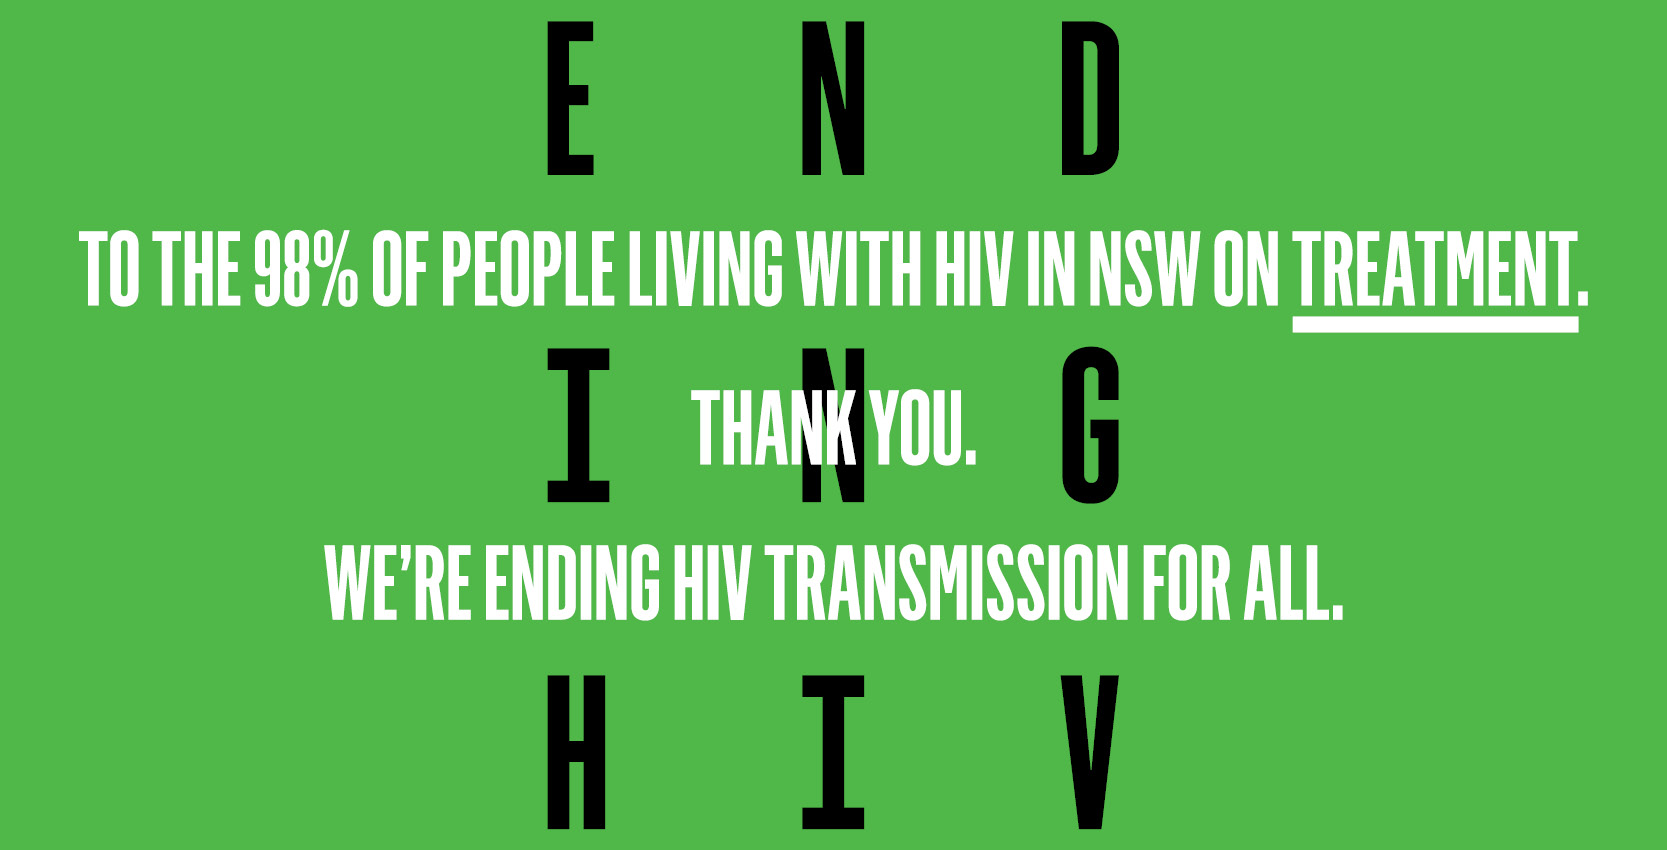 To the 98% of people living with HIV on treatment, thank you.